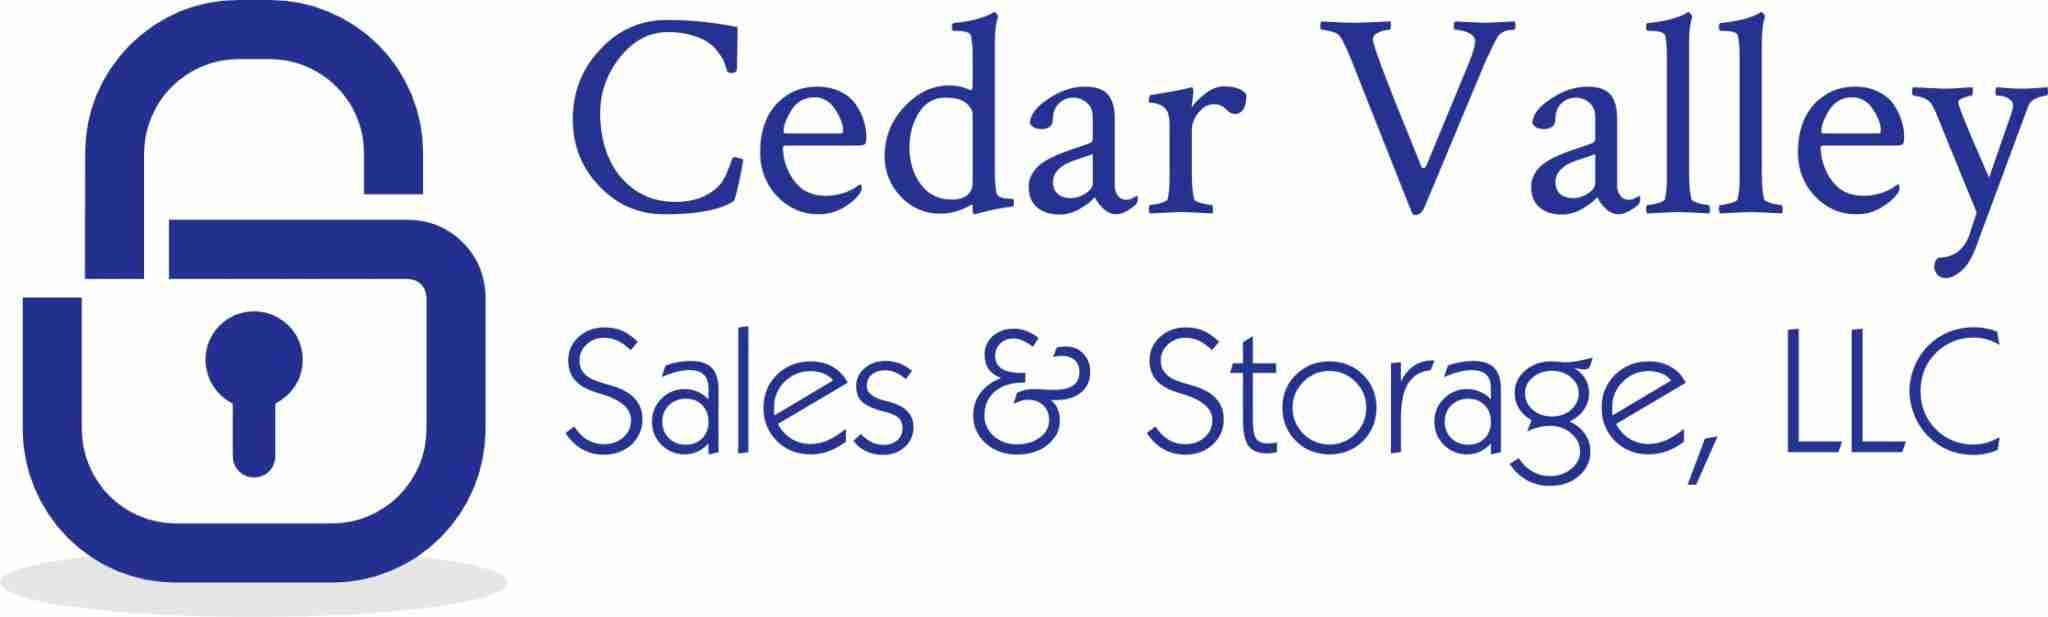 Cedar Valley Sales & Storage